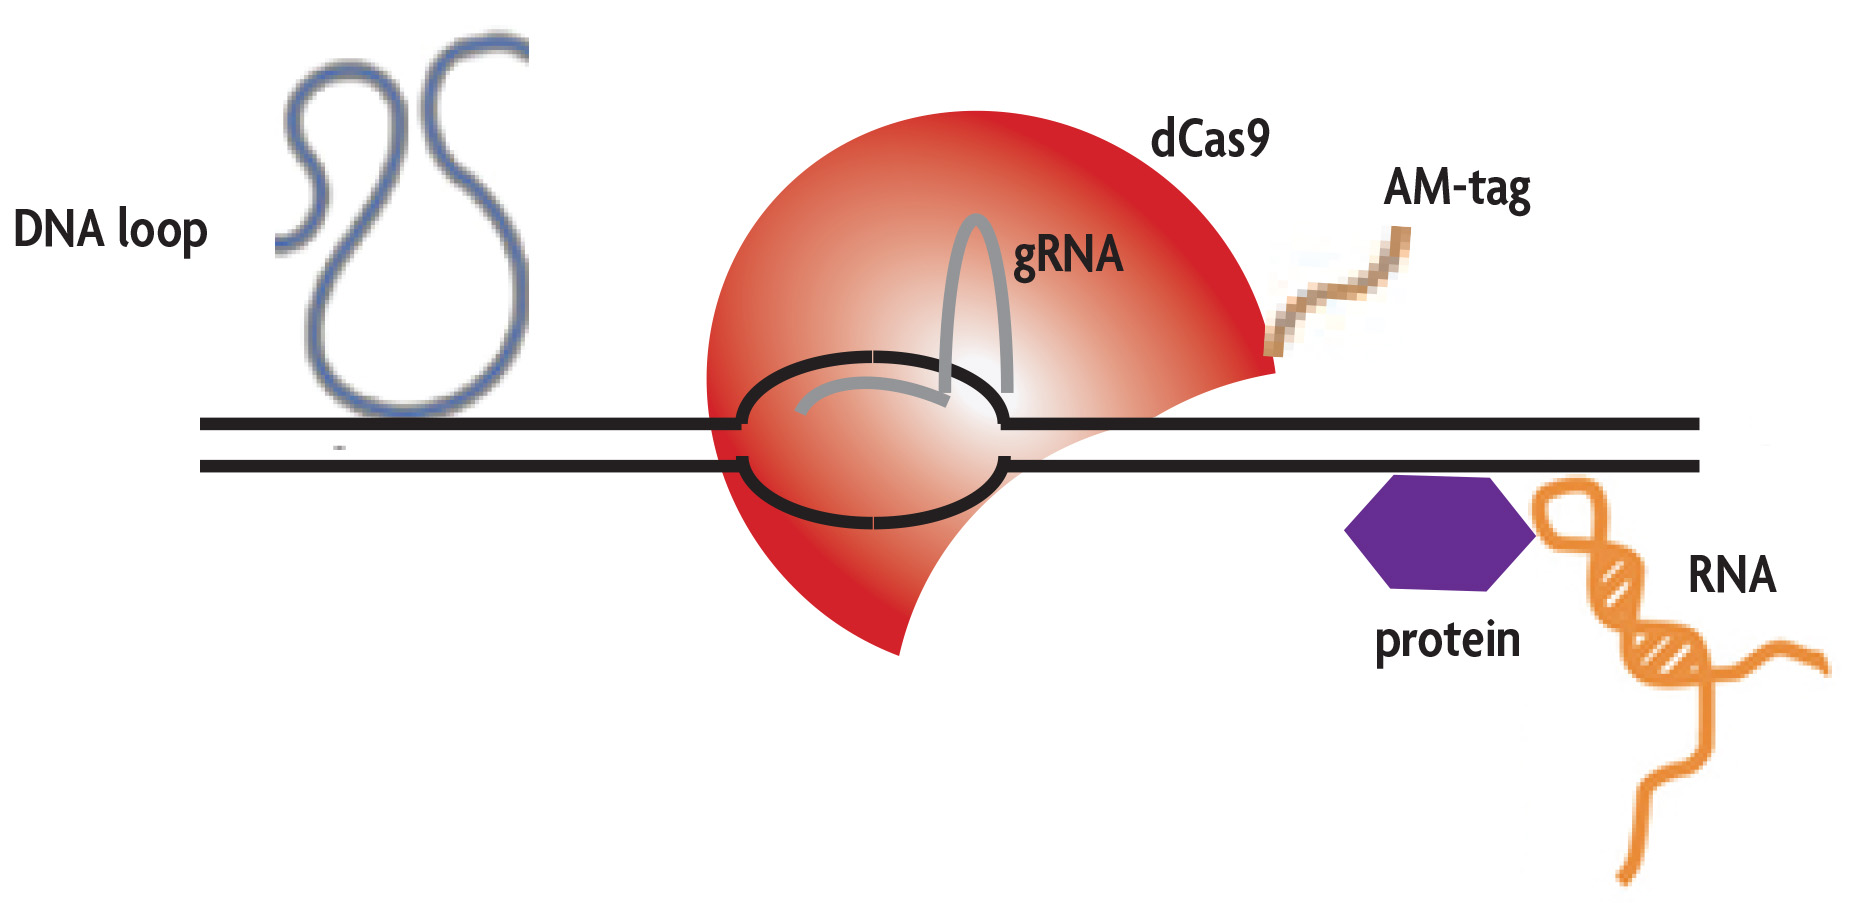 enChIP identified DNA binding interactions